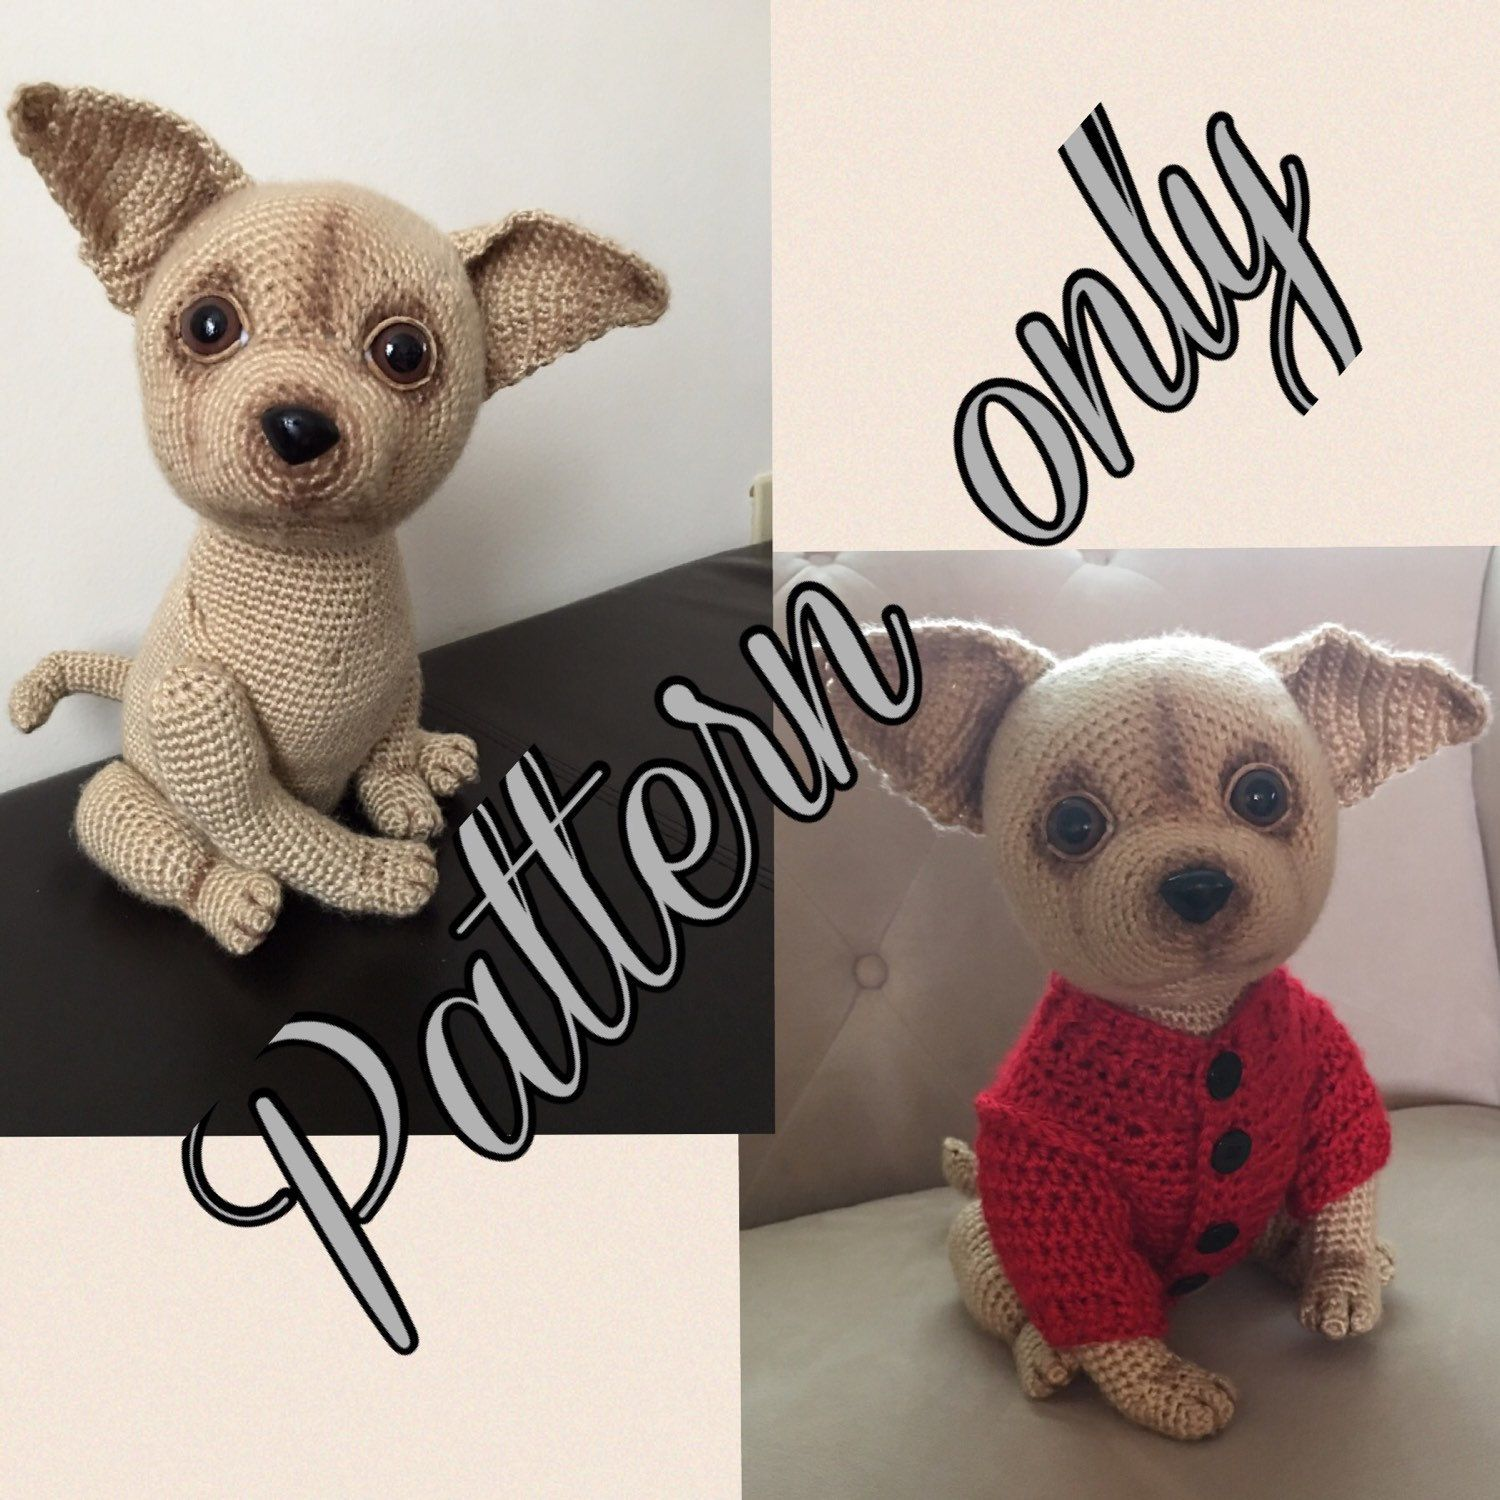 Chihuahua dog crochet pattern PDF + free crochet sweater pattern ...